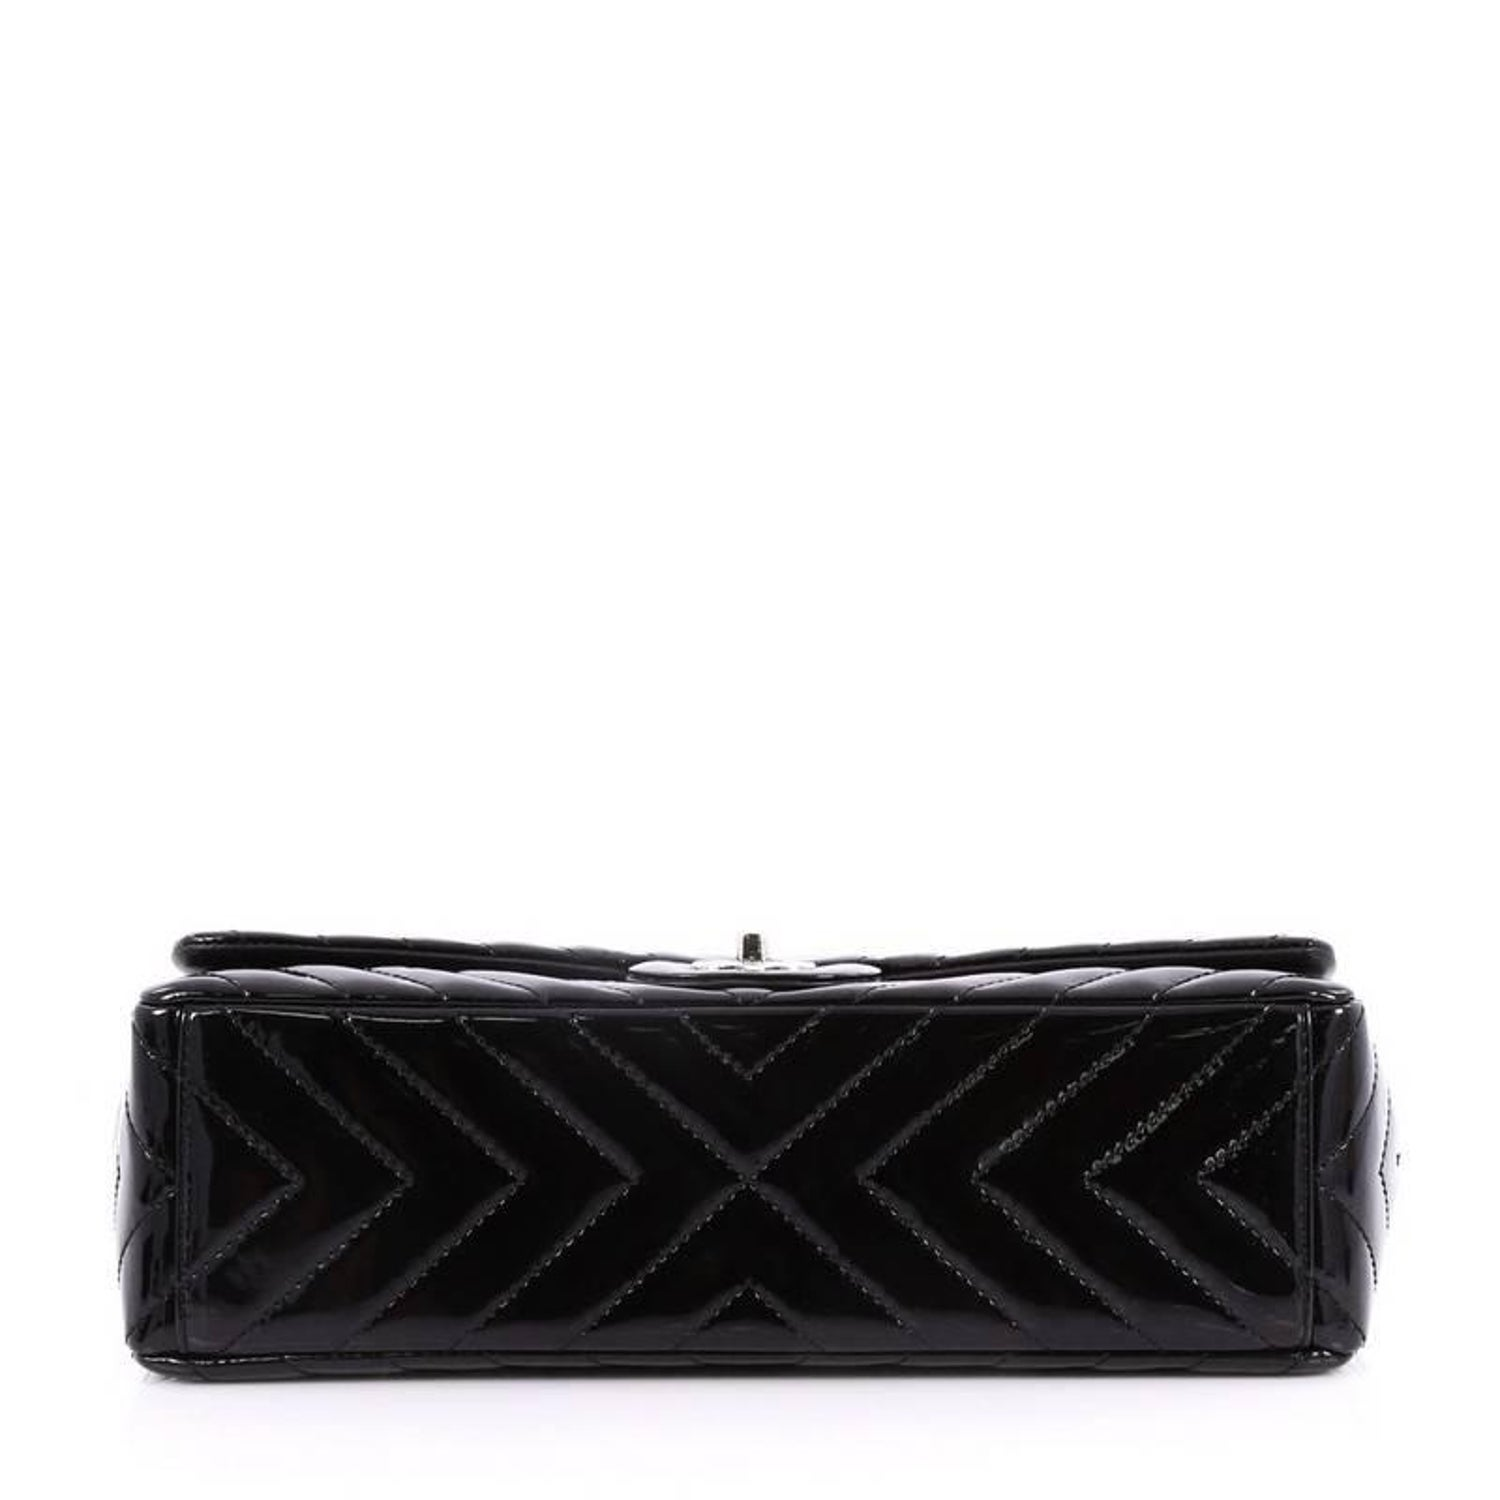 97143d65d26226 Chanel Classic Single Flap Bag Chevron Patent Maxi at 1stdibs